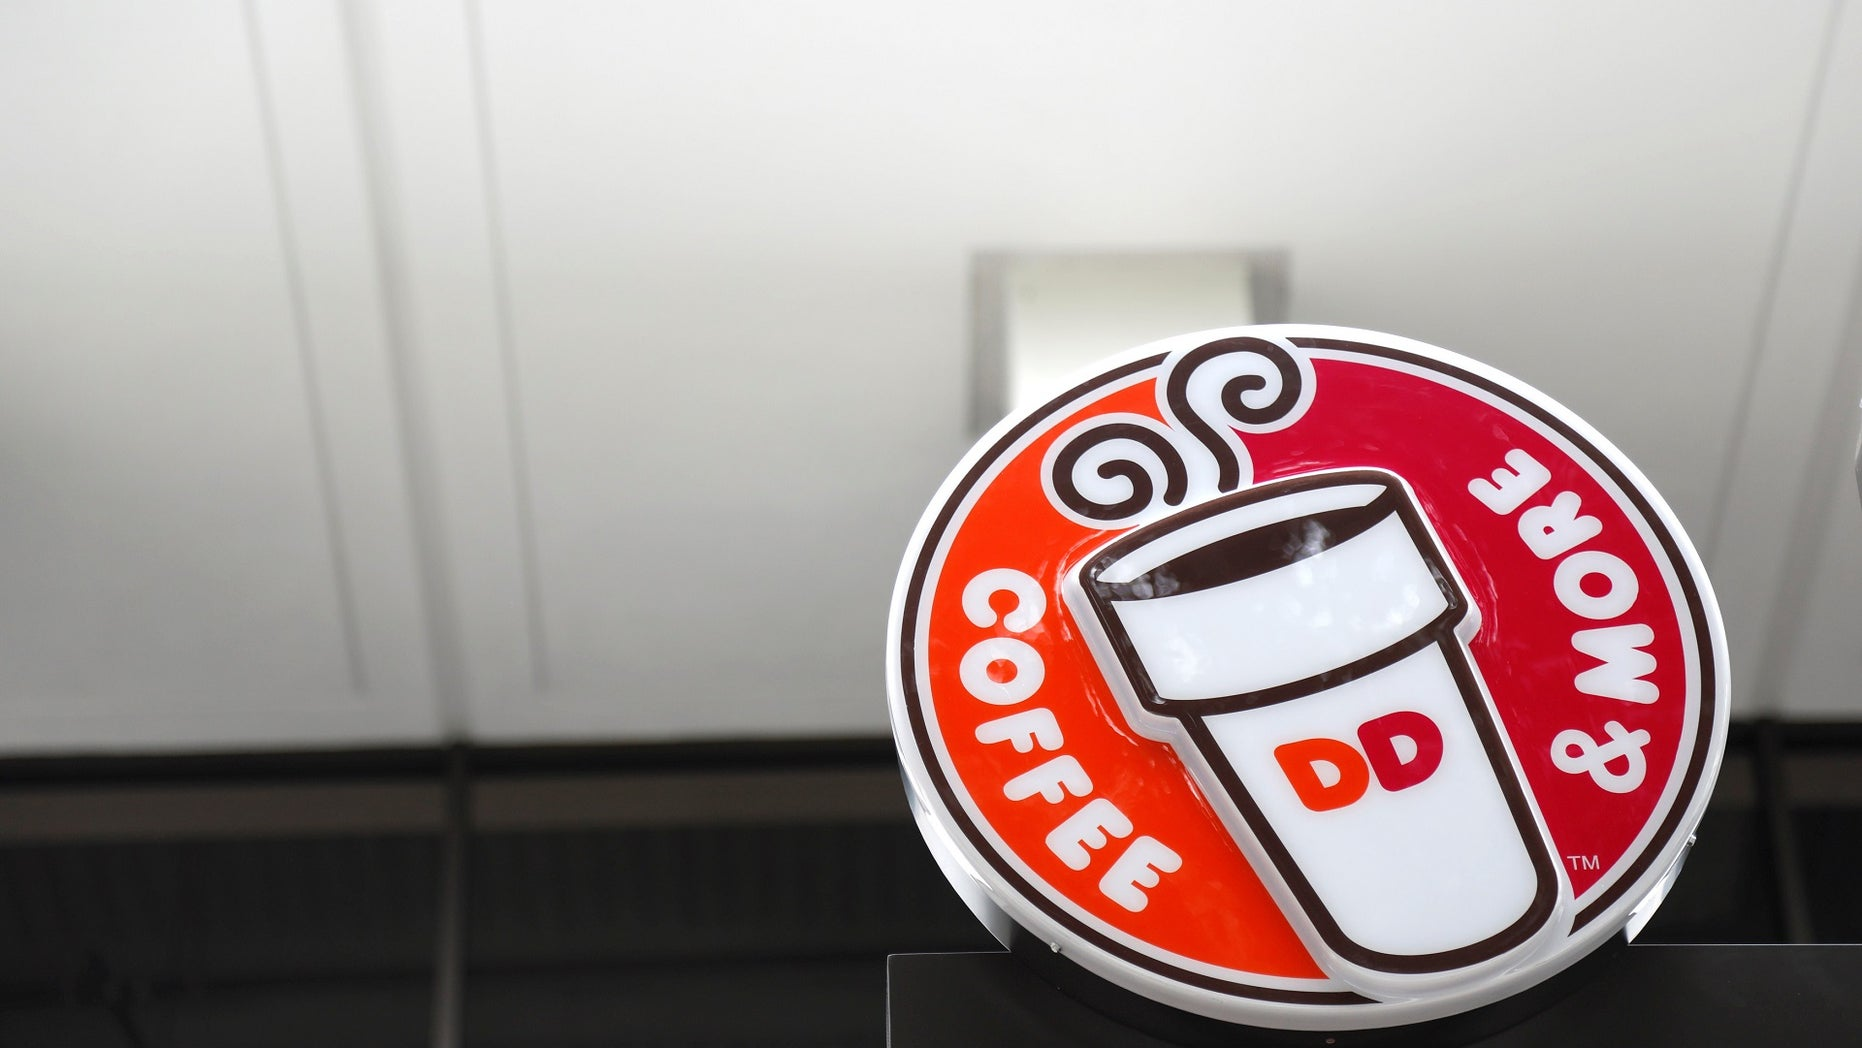 Dunkin' Donuts is donating $1 from iced coffee purchases on May 23 to pediatric emergency medicine, at select locations.